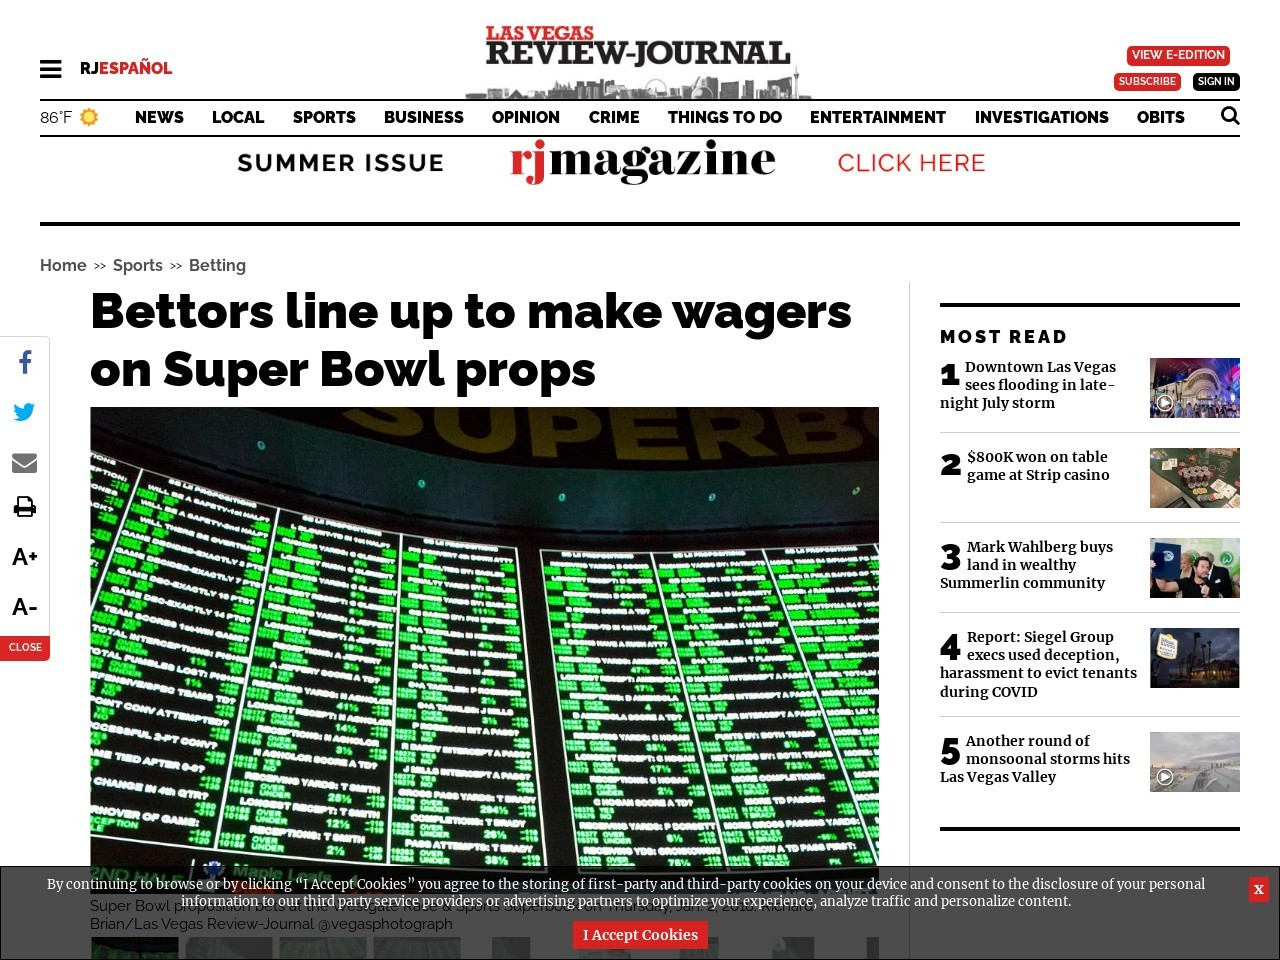 Bettors line up to make wagers on Super Bowl props